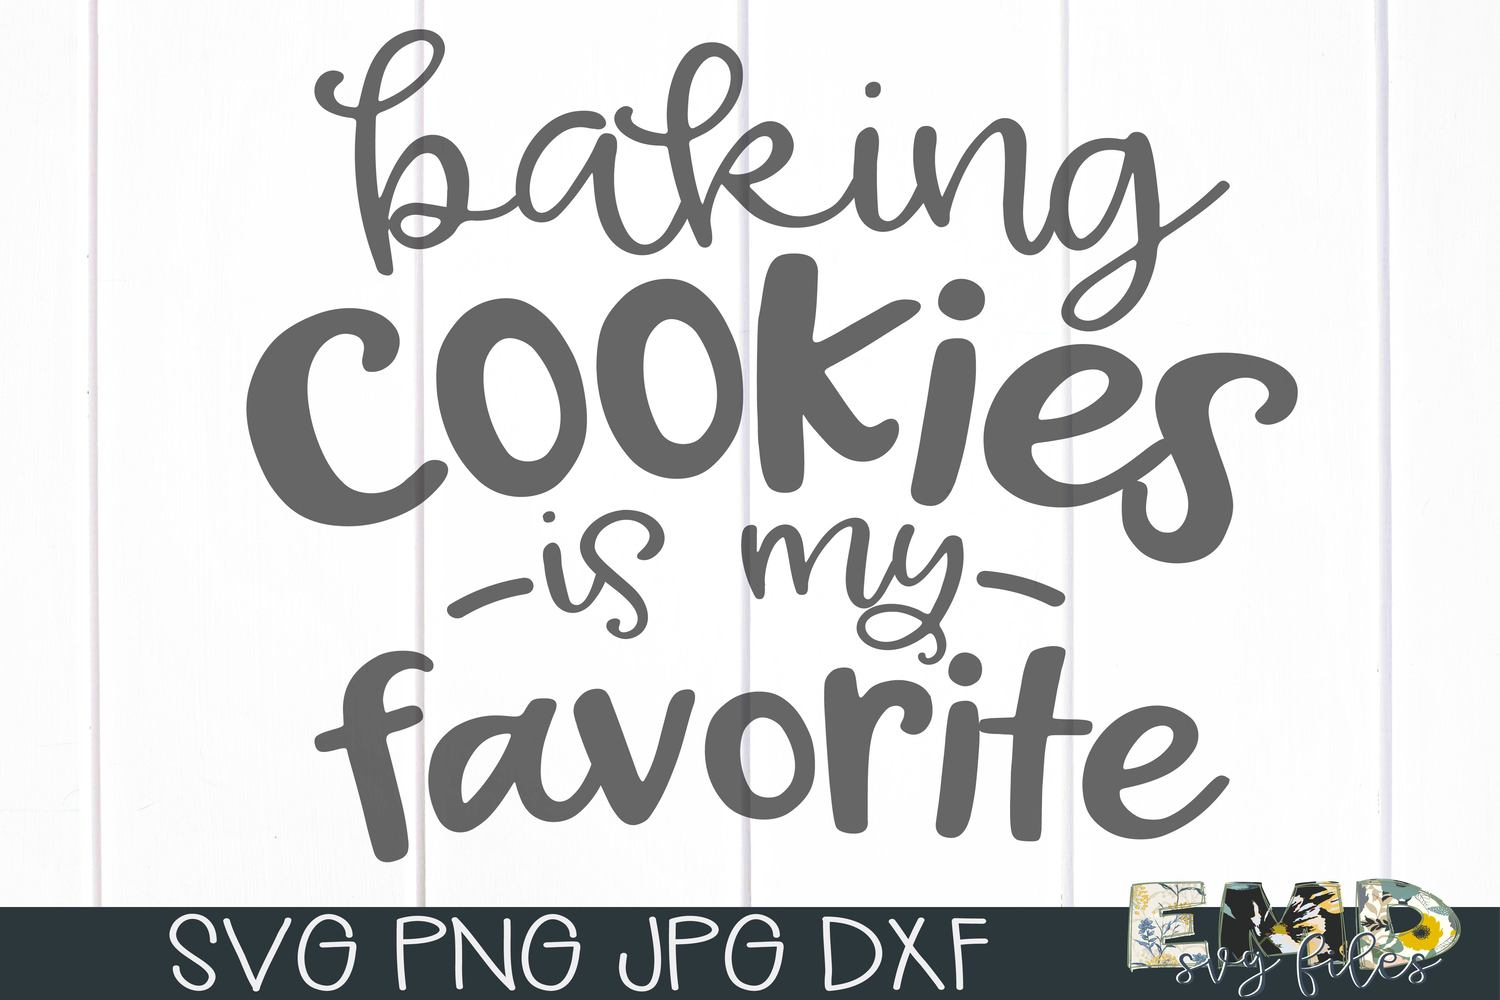 Christmas Baking Cookies Svg File   Holiday Svg example image 2